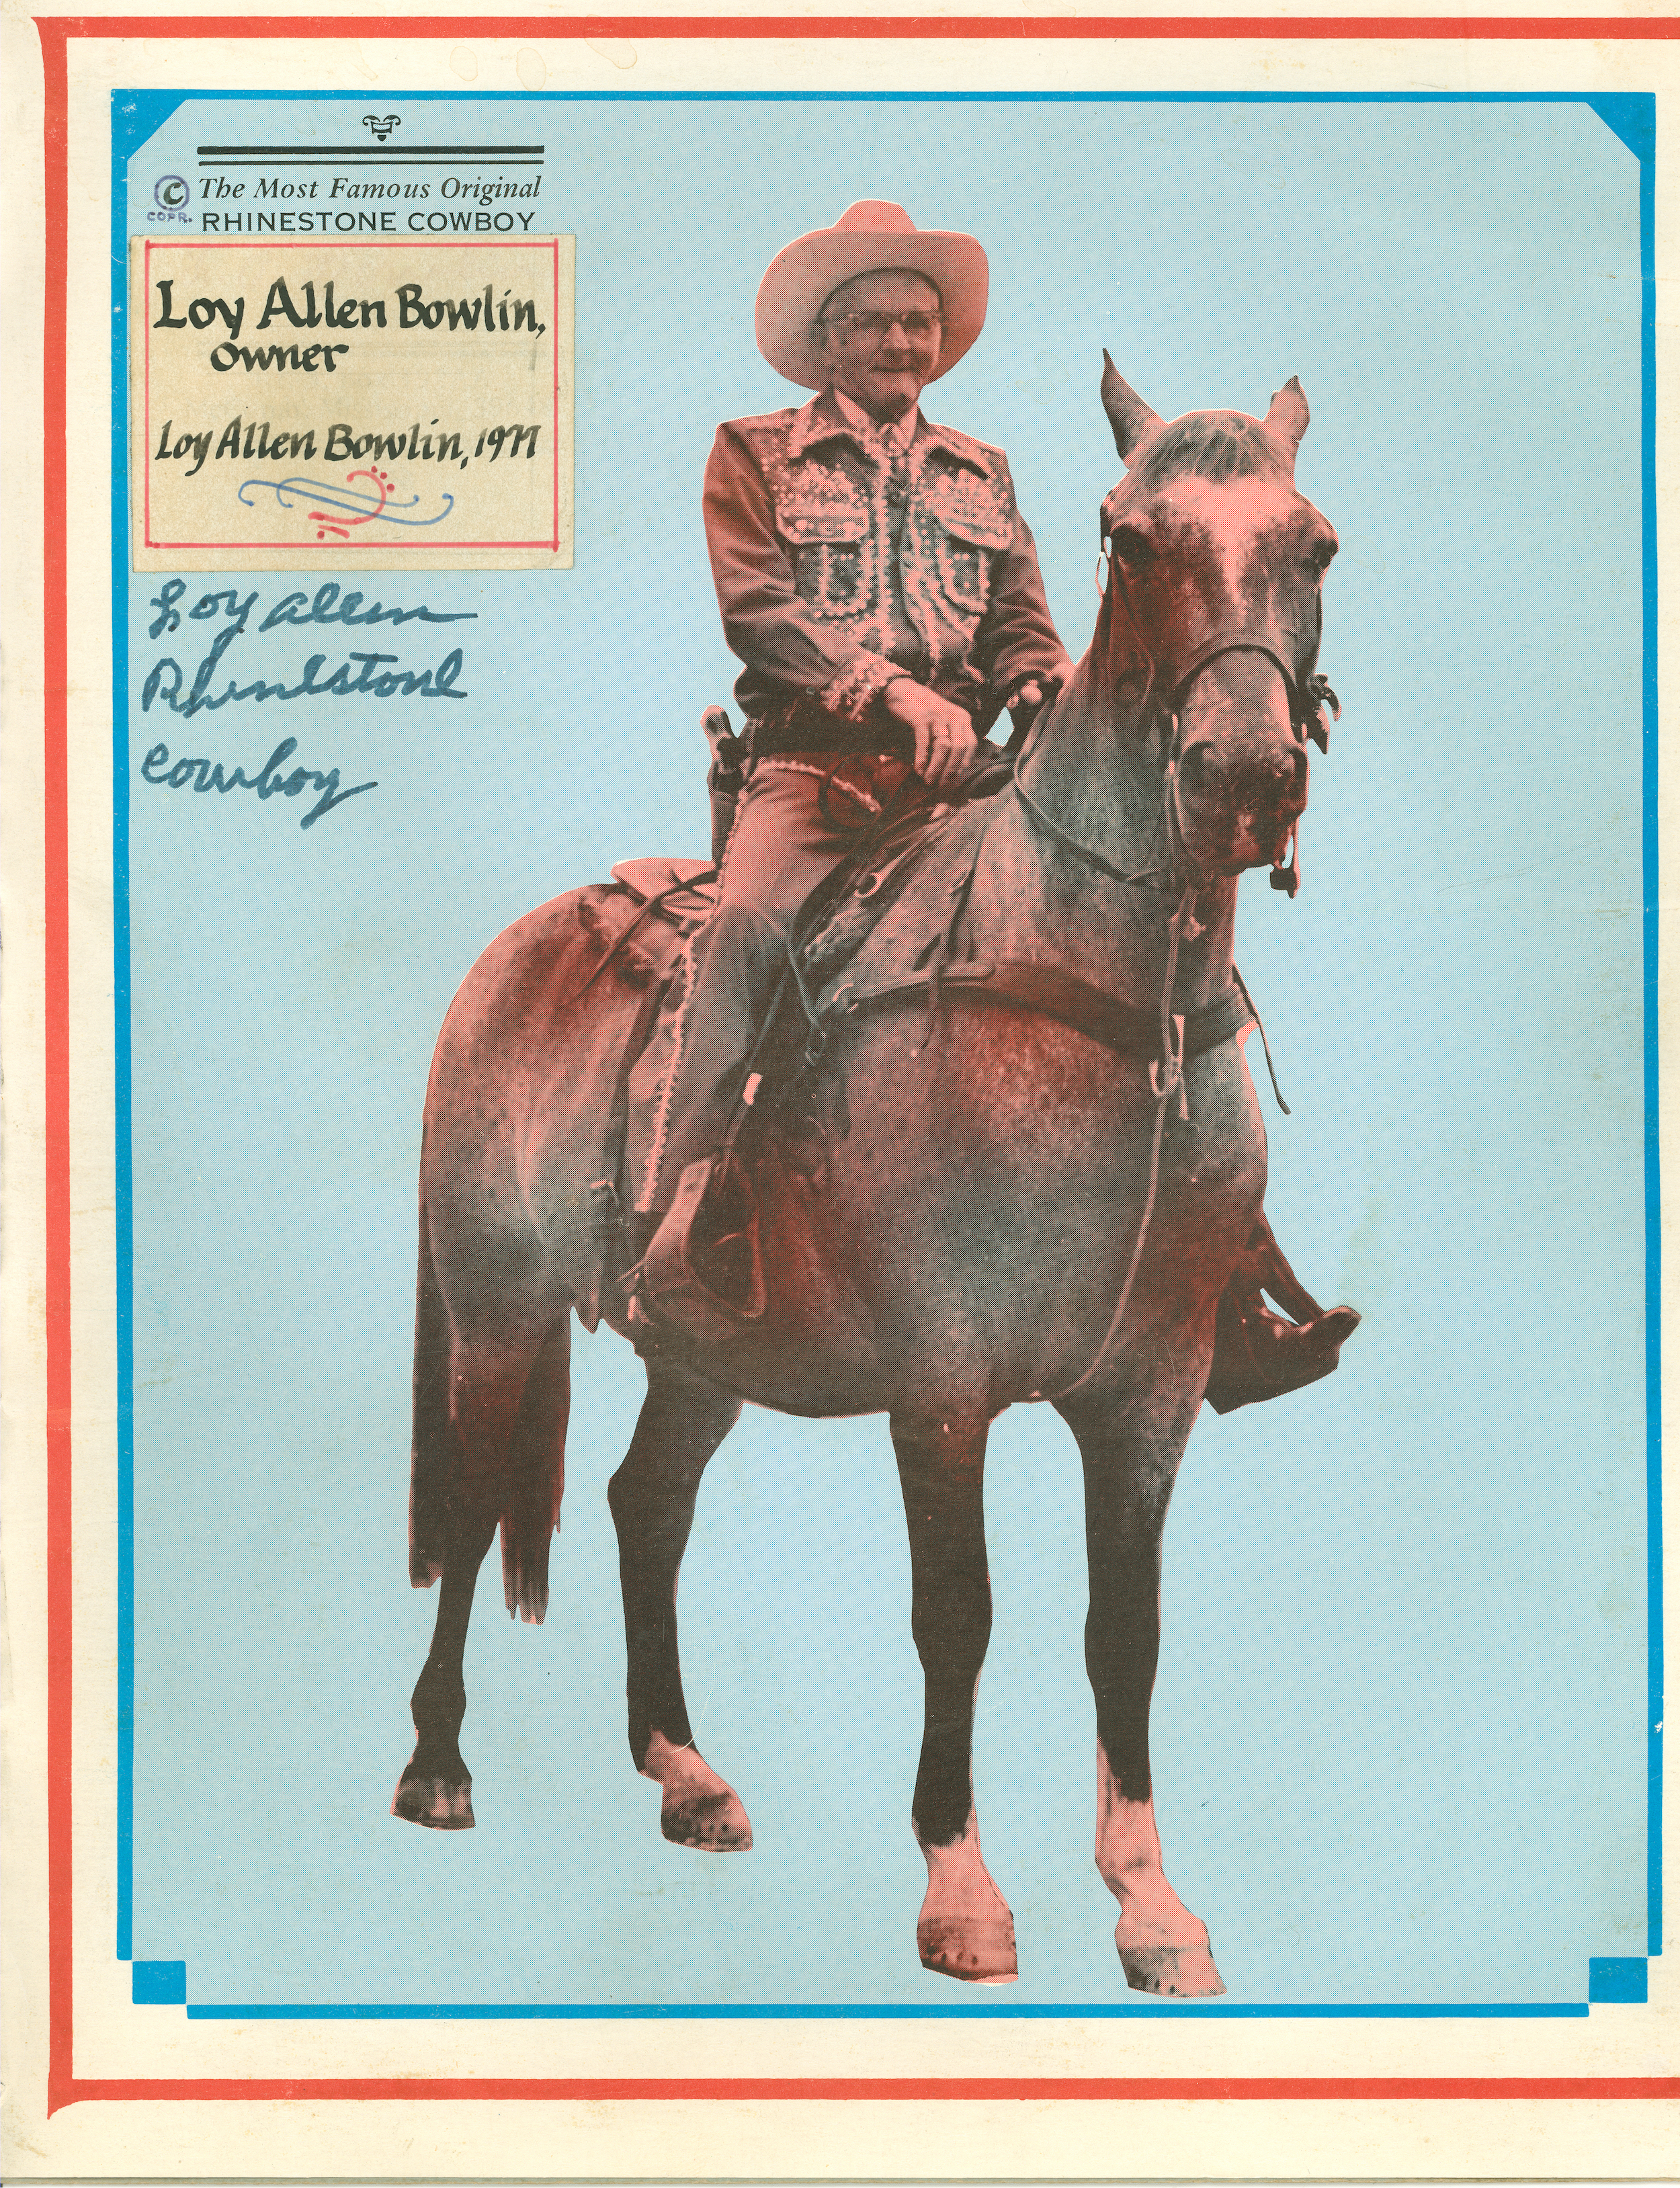 KCHUNG Radio L.A. - Listen to a conversation about the Rhinestone Cowboy on KCHUNG's Both Kinds of Music show, Sept. 2017 (starting at 54:00)